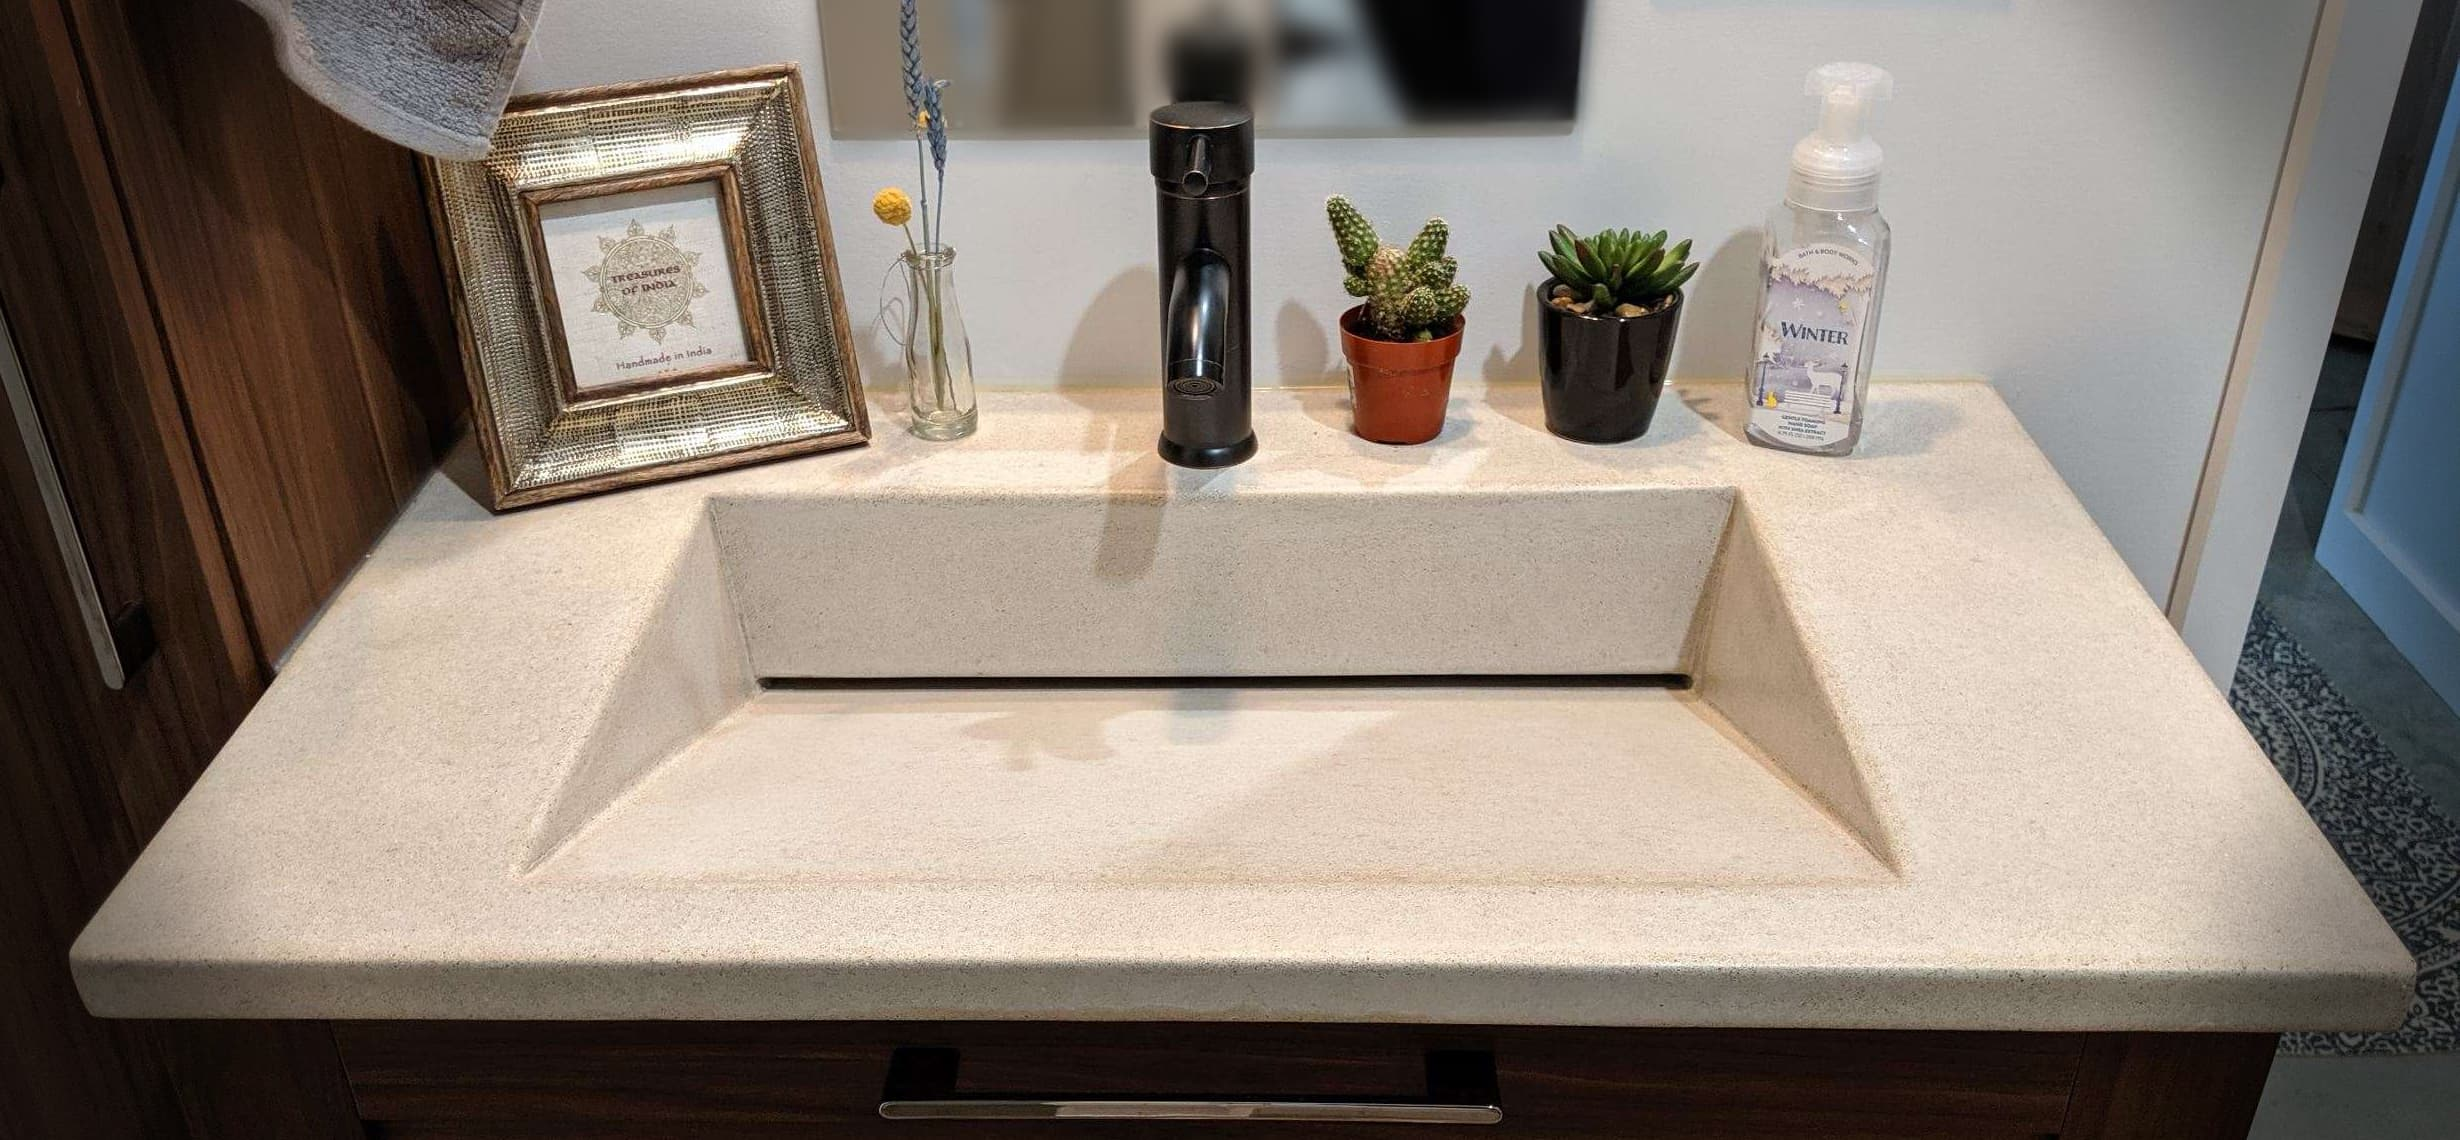 A classic wedge basin for a bathroom. Simple, functional,modern. #residential